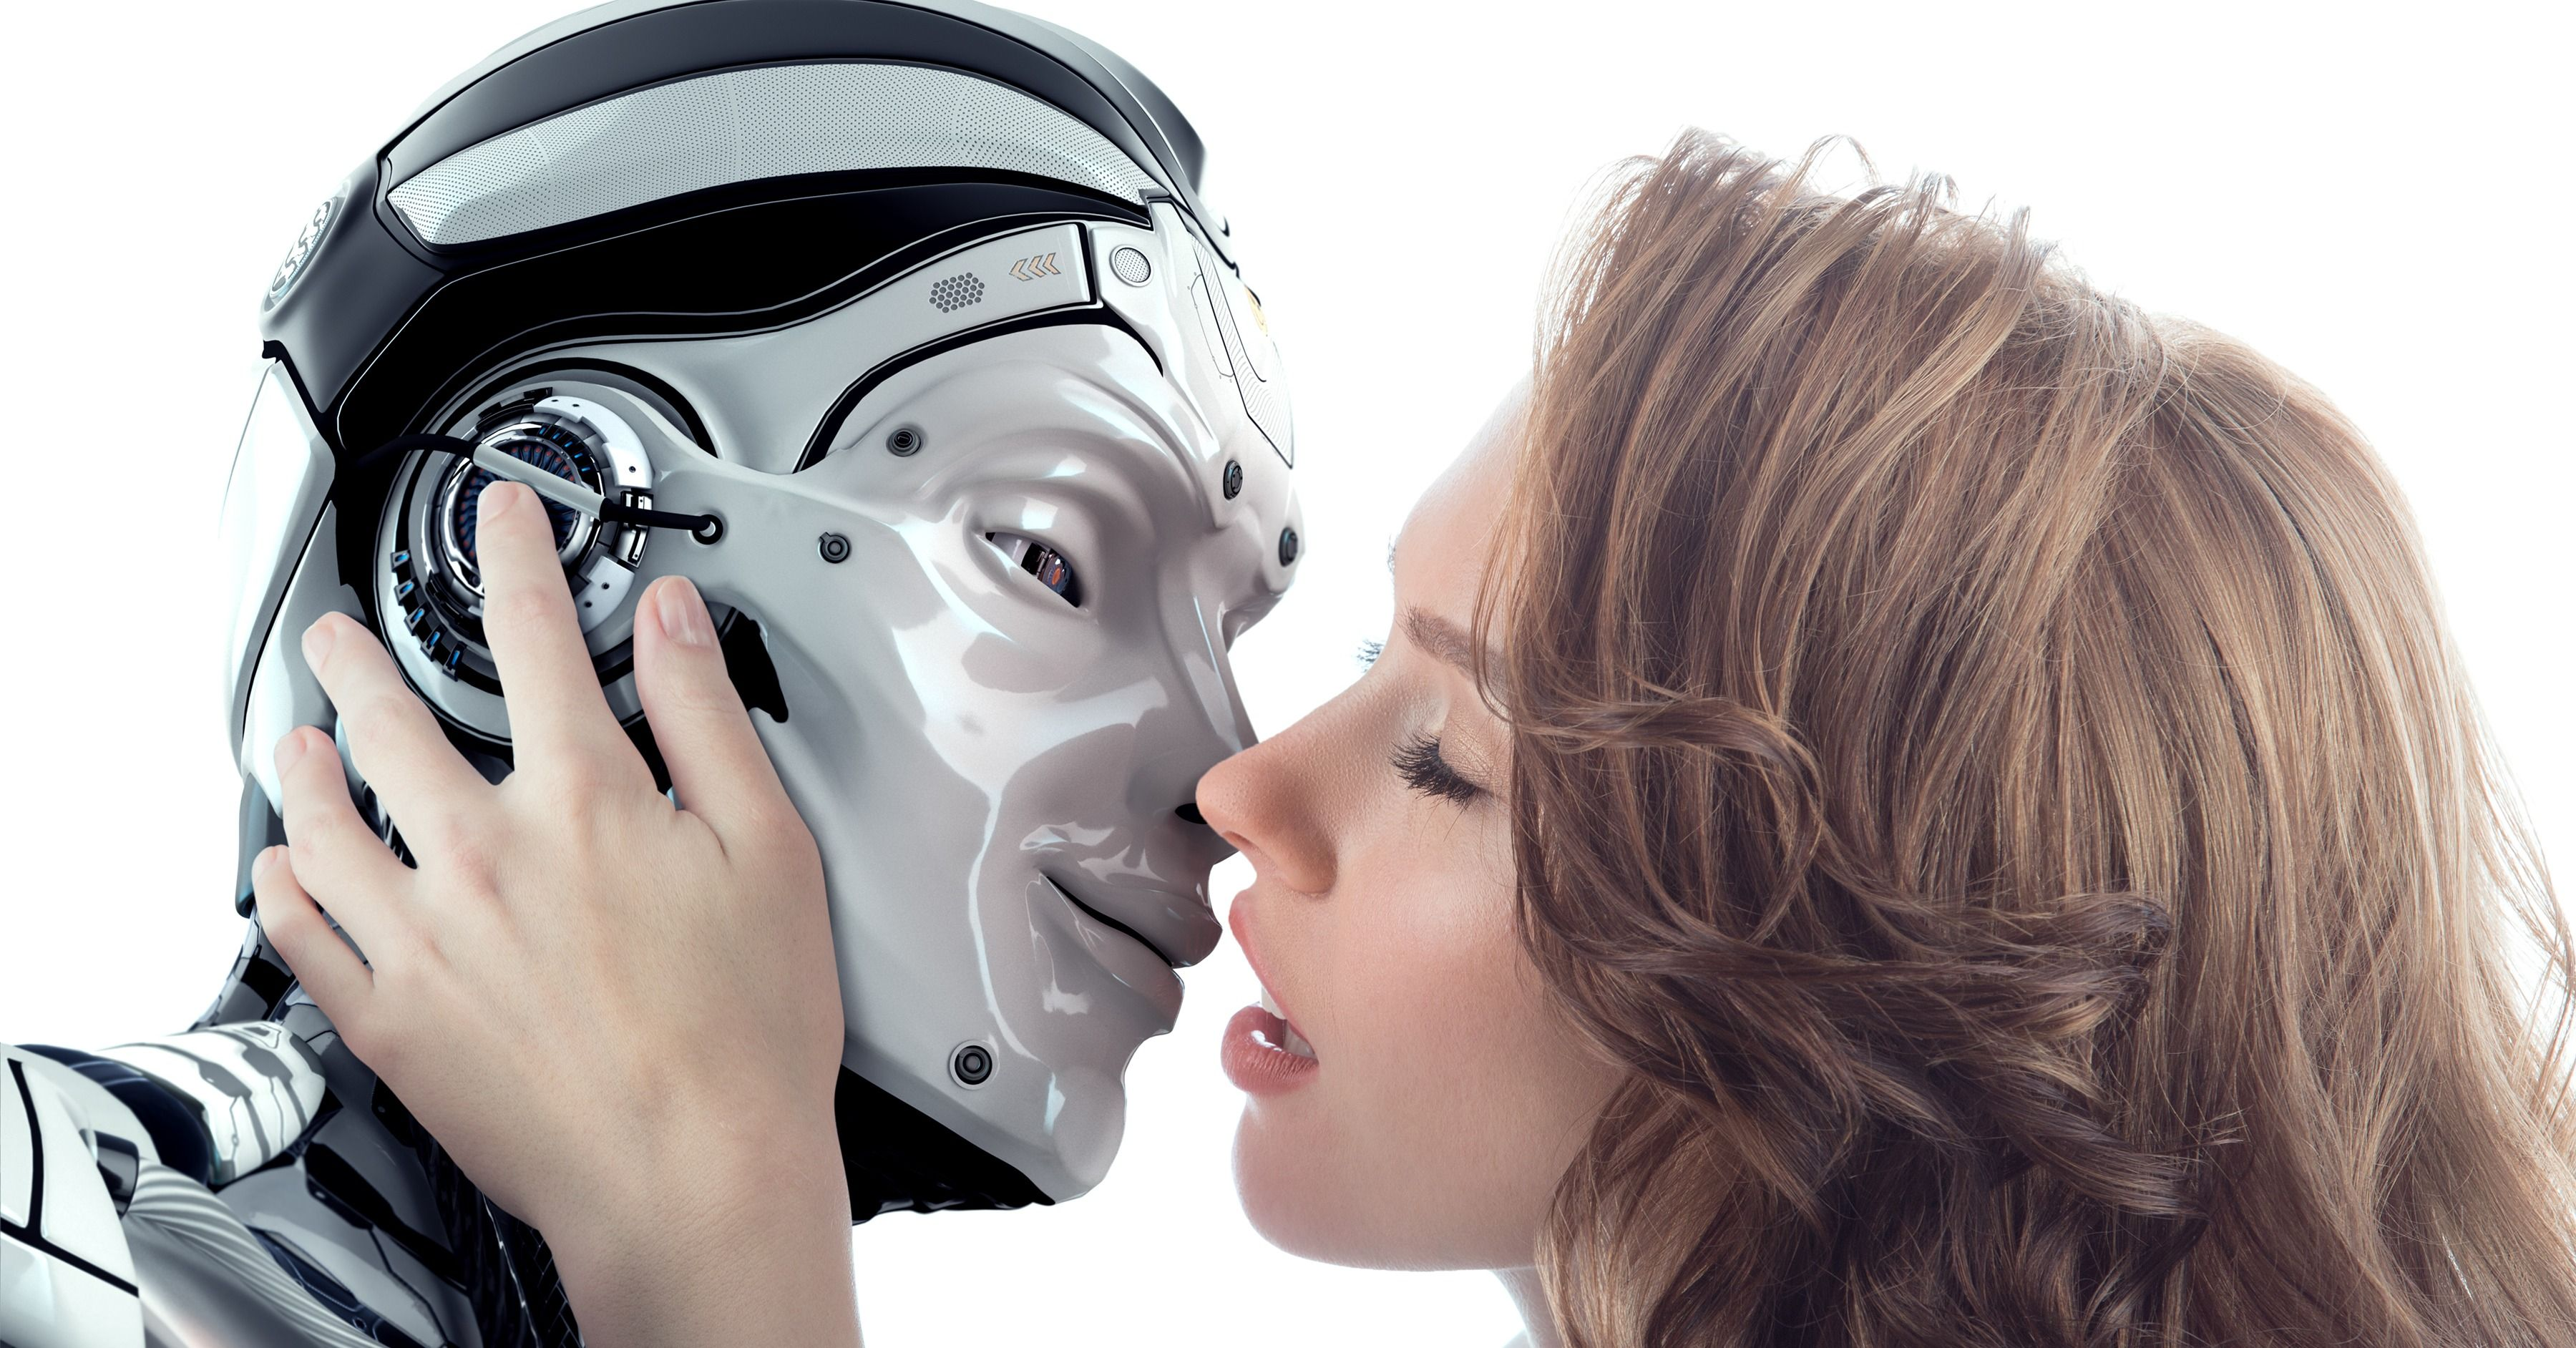 Sex Robots Are Apparently Going To Be The 'Next Big Thing' In The Future!